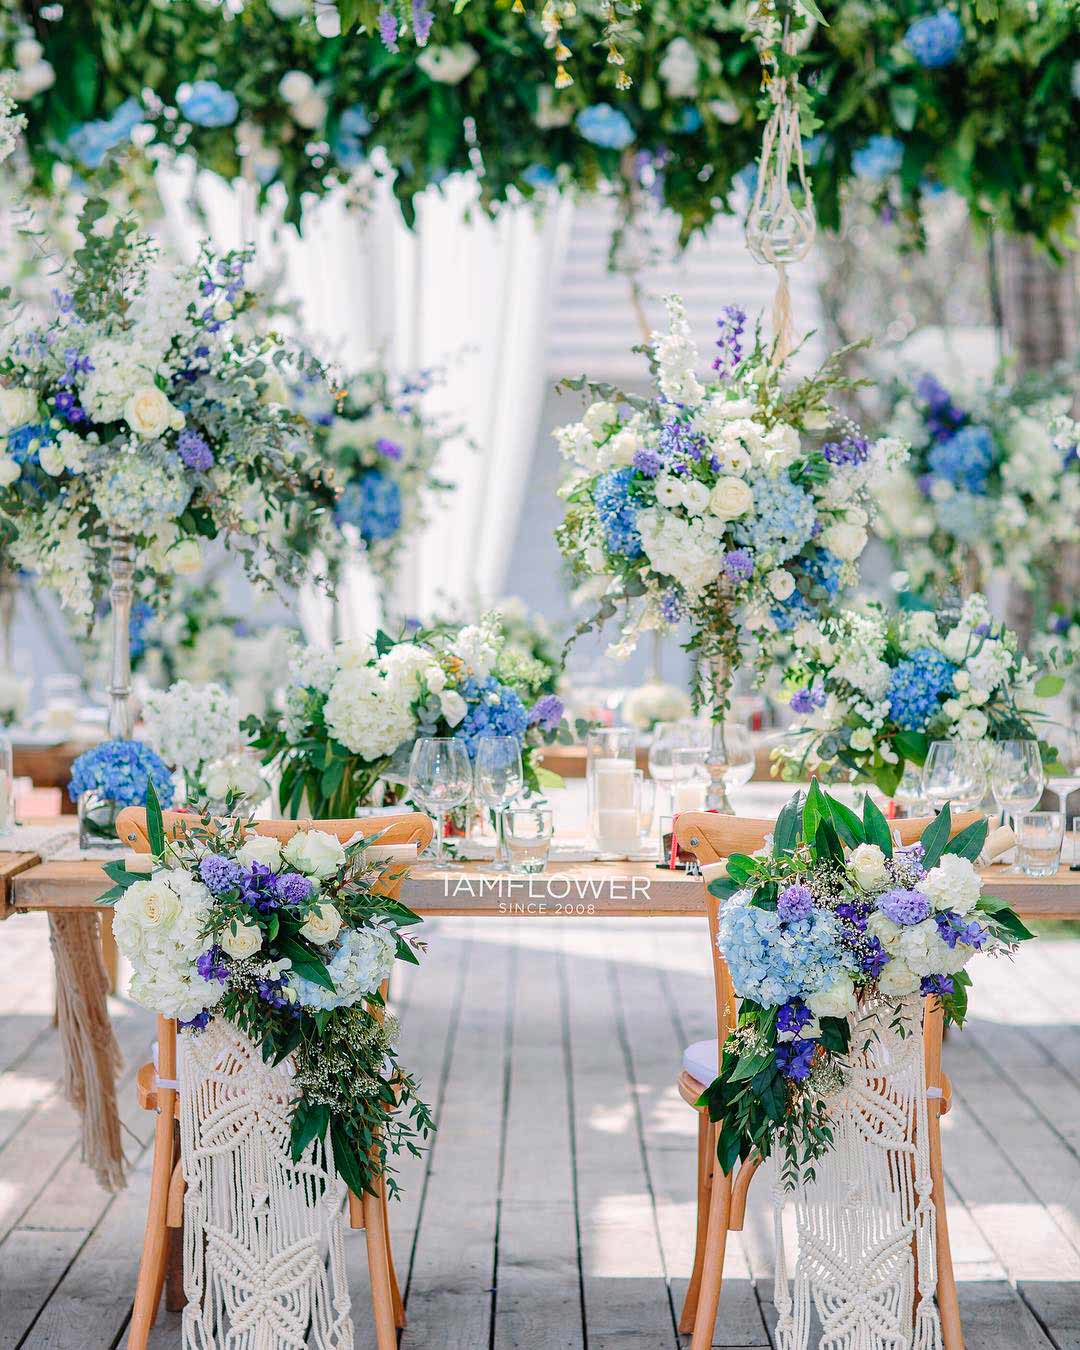 blue and white wedding colors flowers decor table